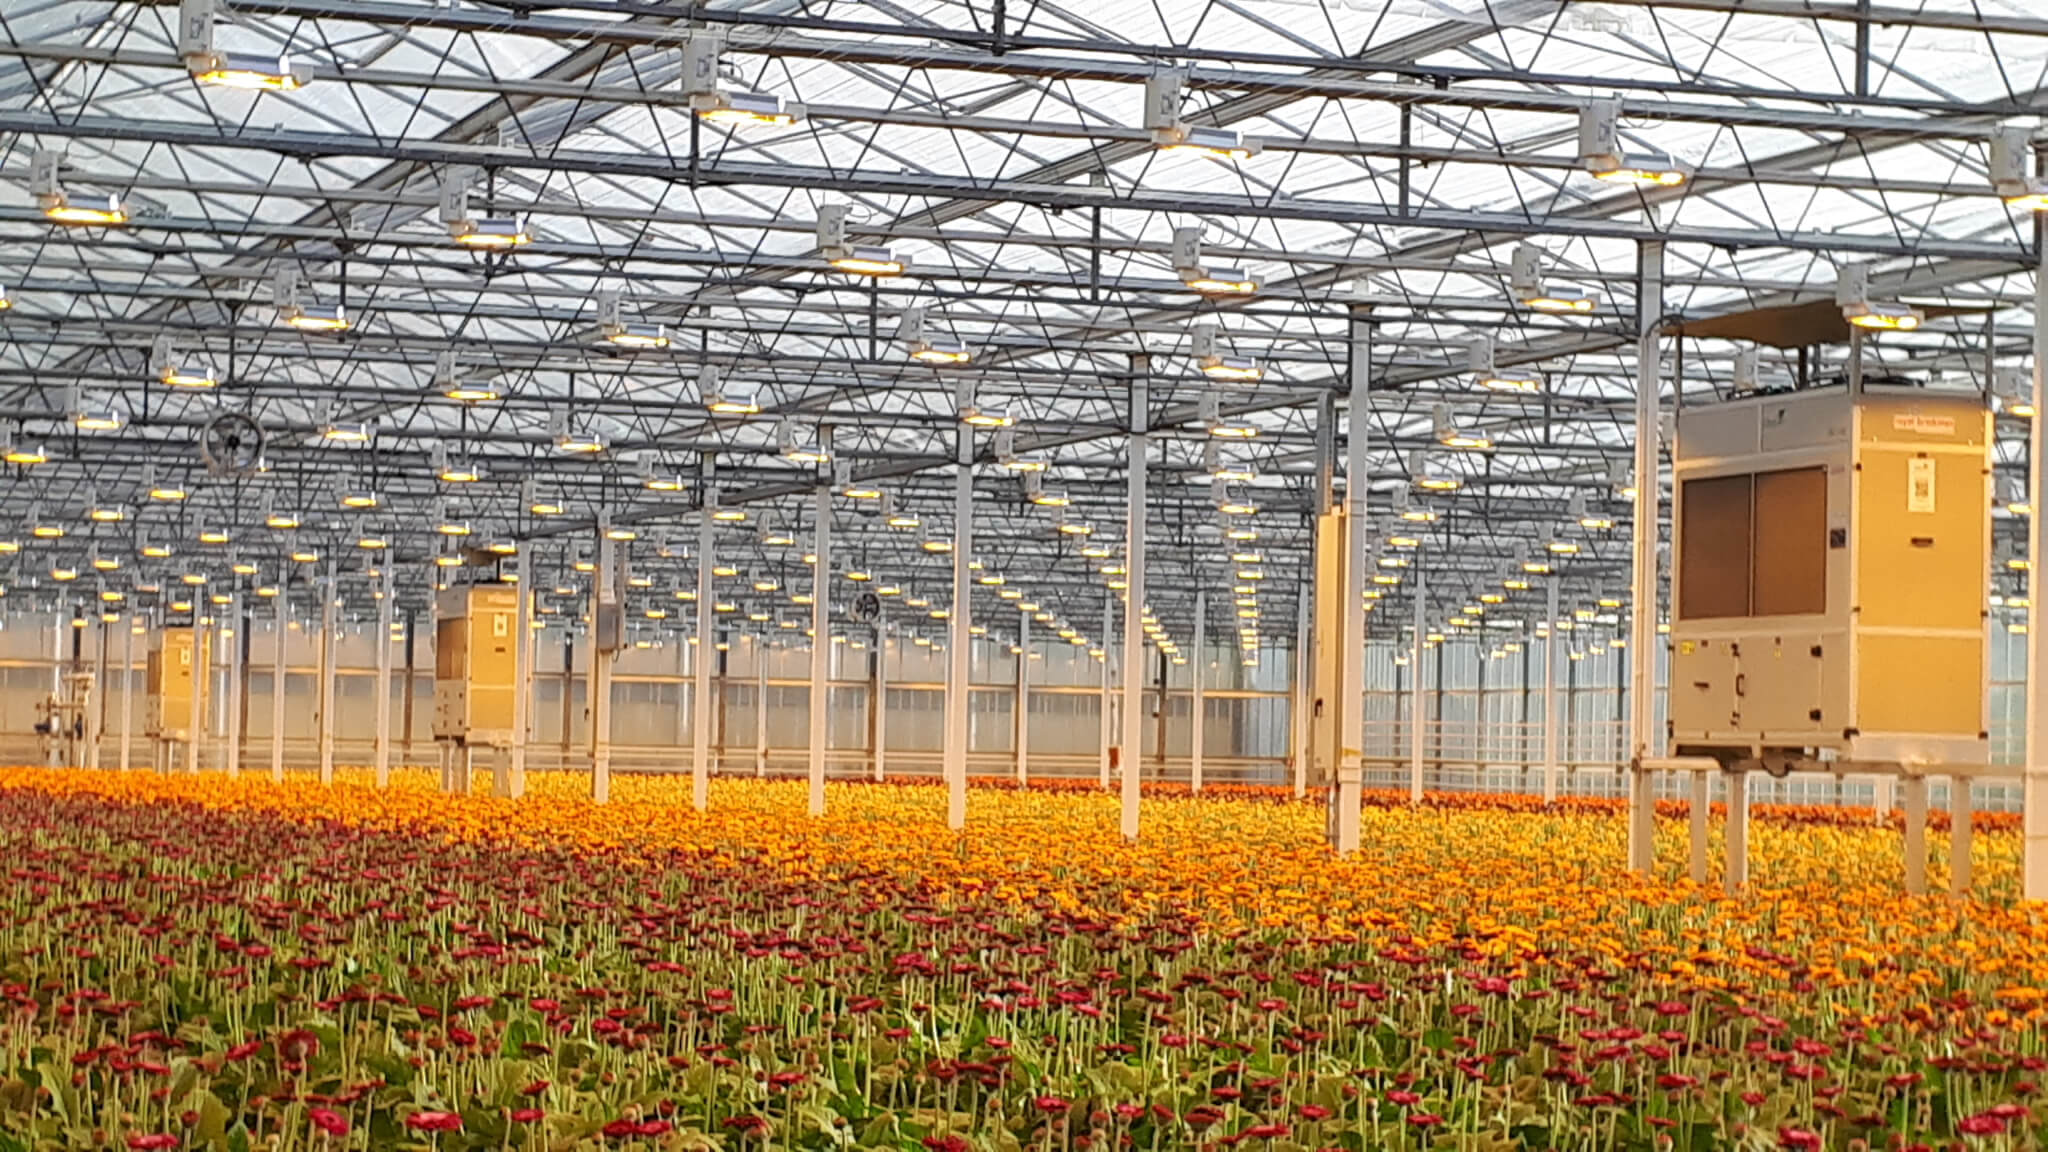 3 DG-12 units on frames. Gerberas greenhouse